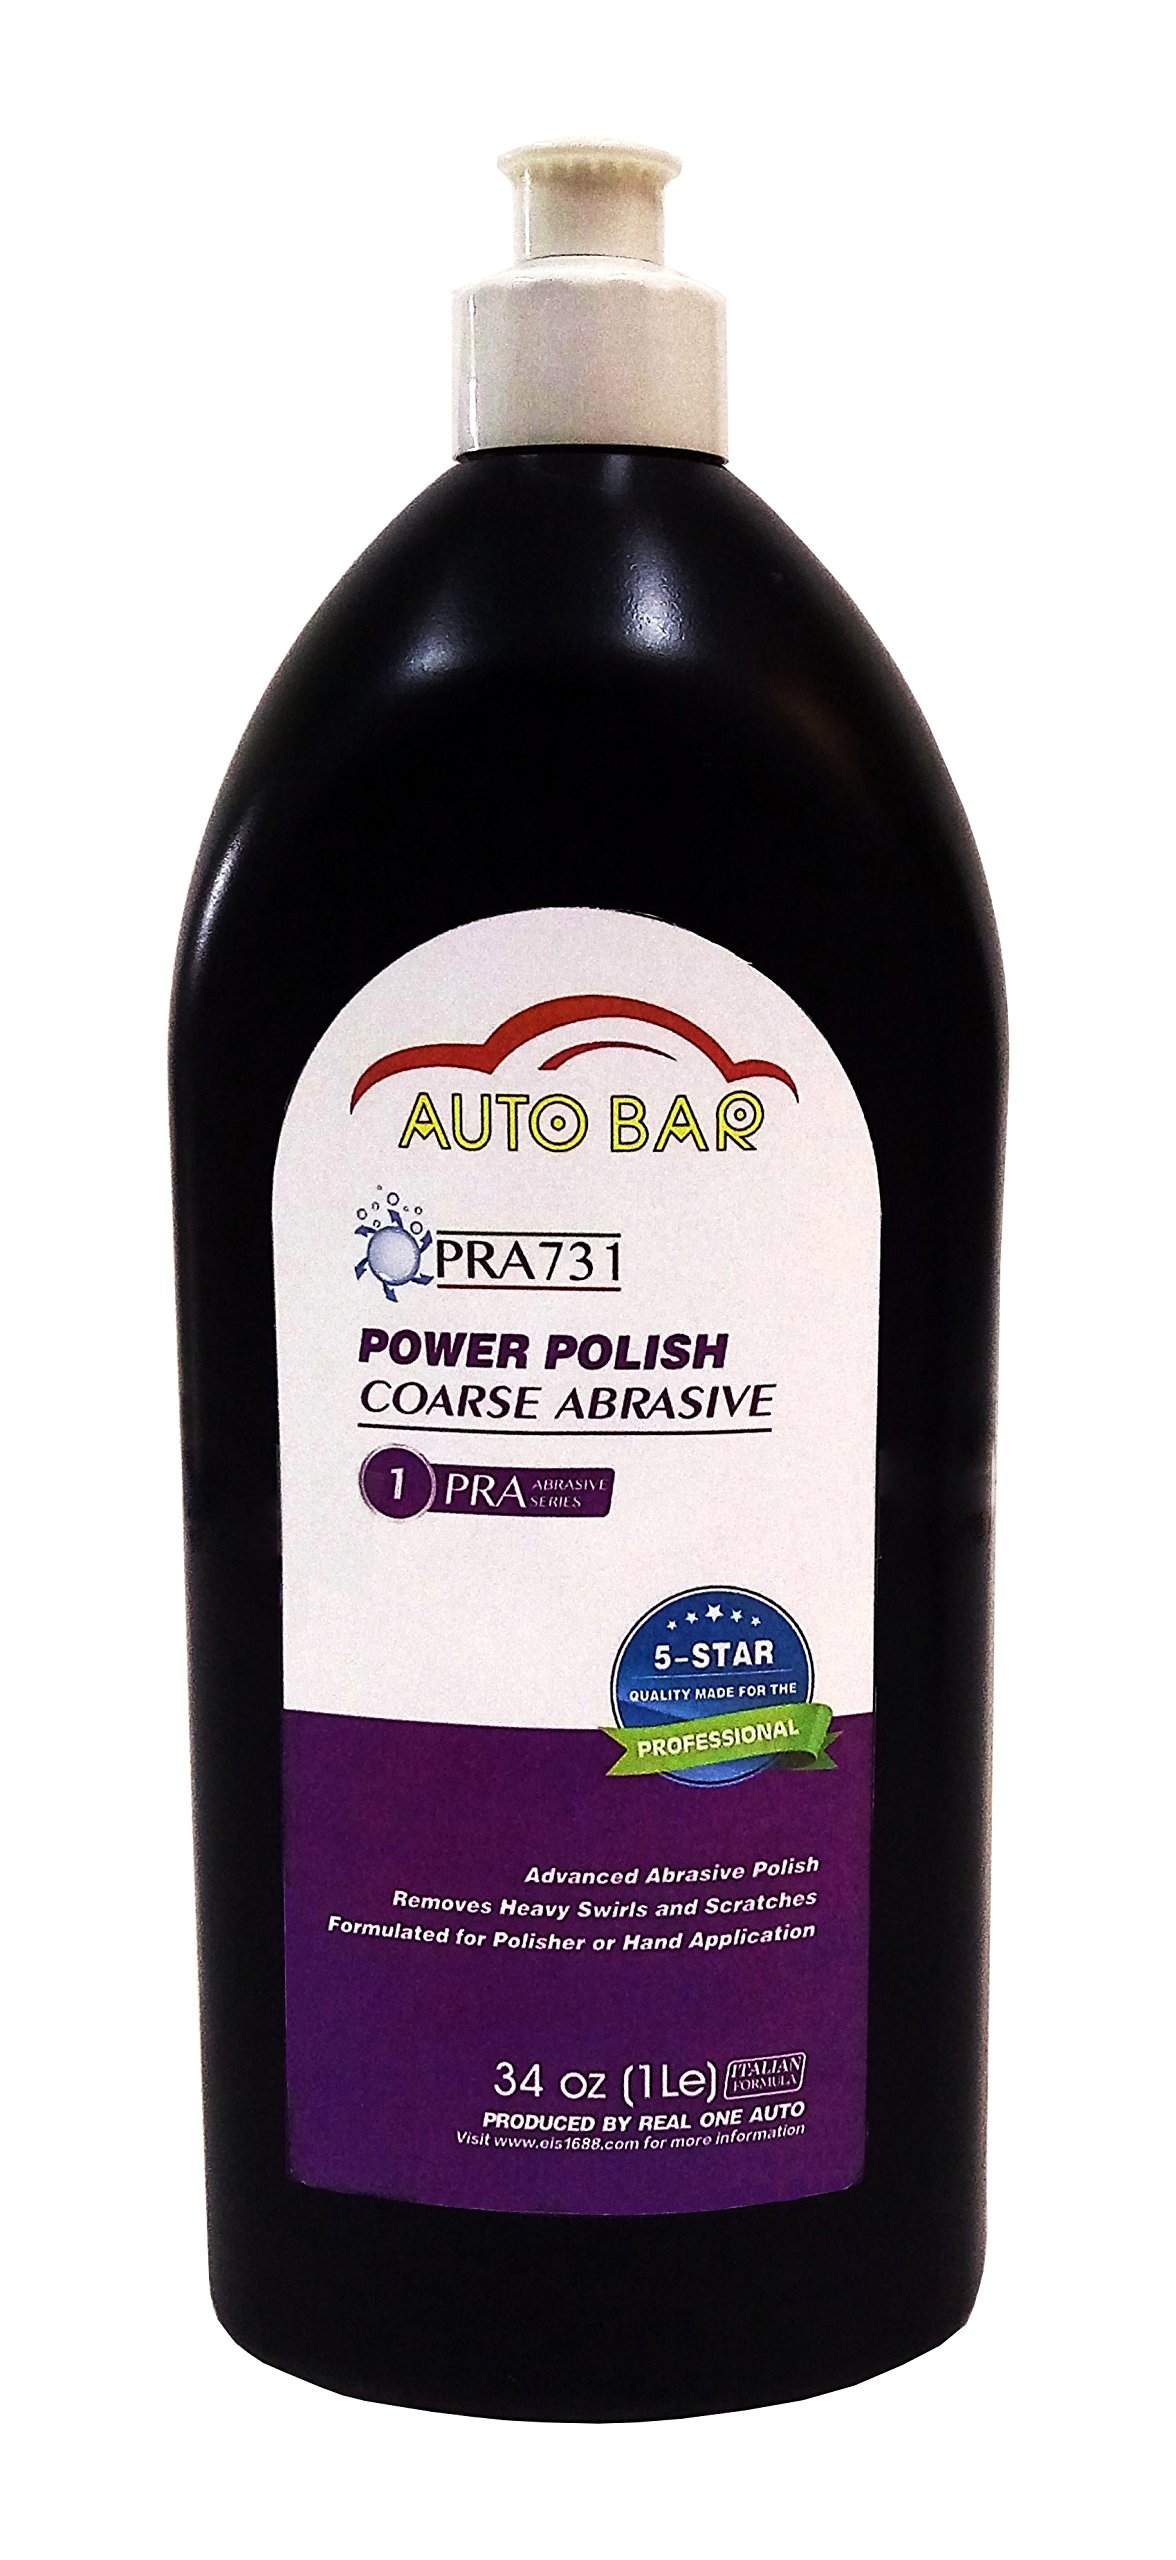 Heavy Cut Professional Grade Polish for Heavy Swirls/Scratches and Prep for Automotive Wax or Coating Large 34 oz Bottle